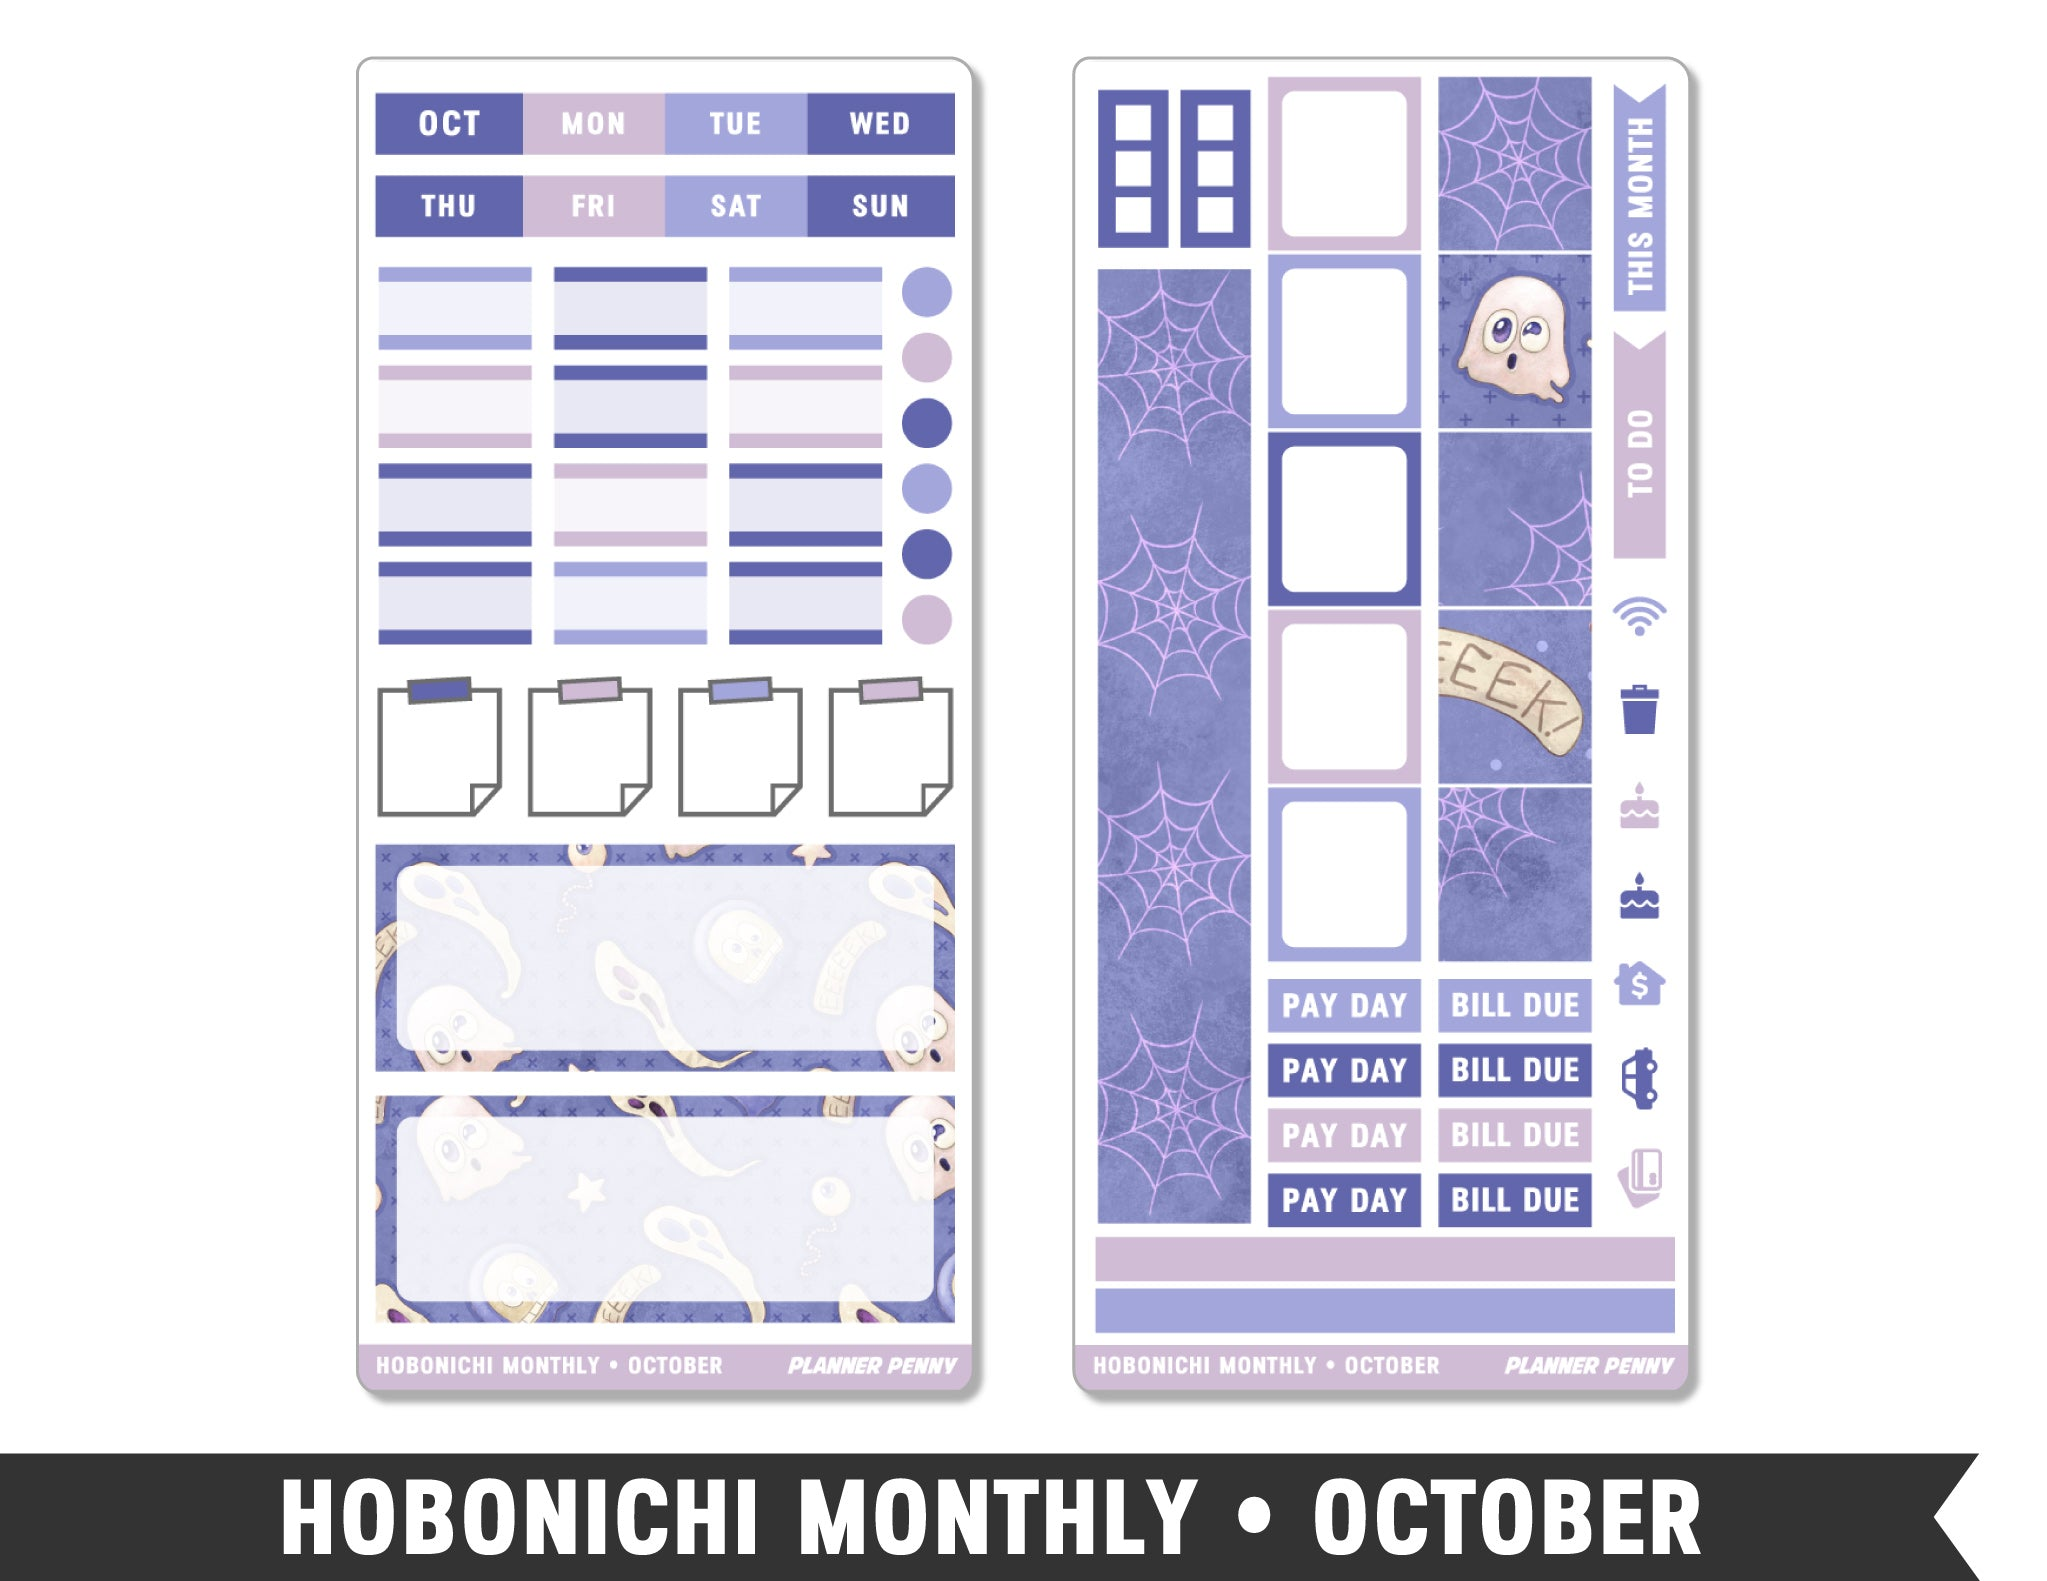 Hobonichi Weeks • October • Monthly Spread Planner Stickers - Planner Penny